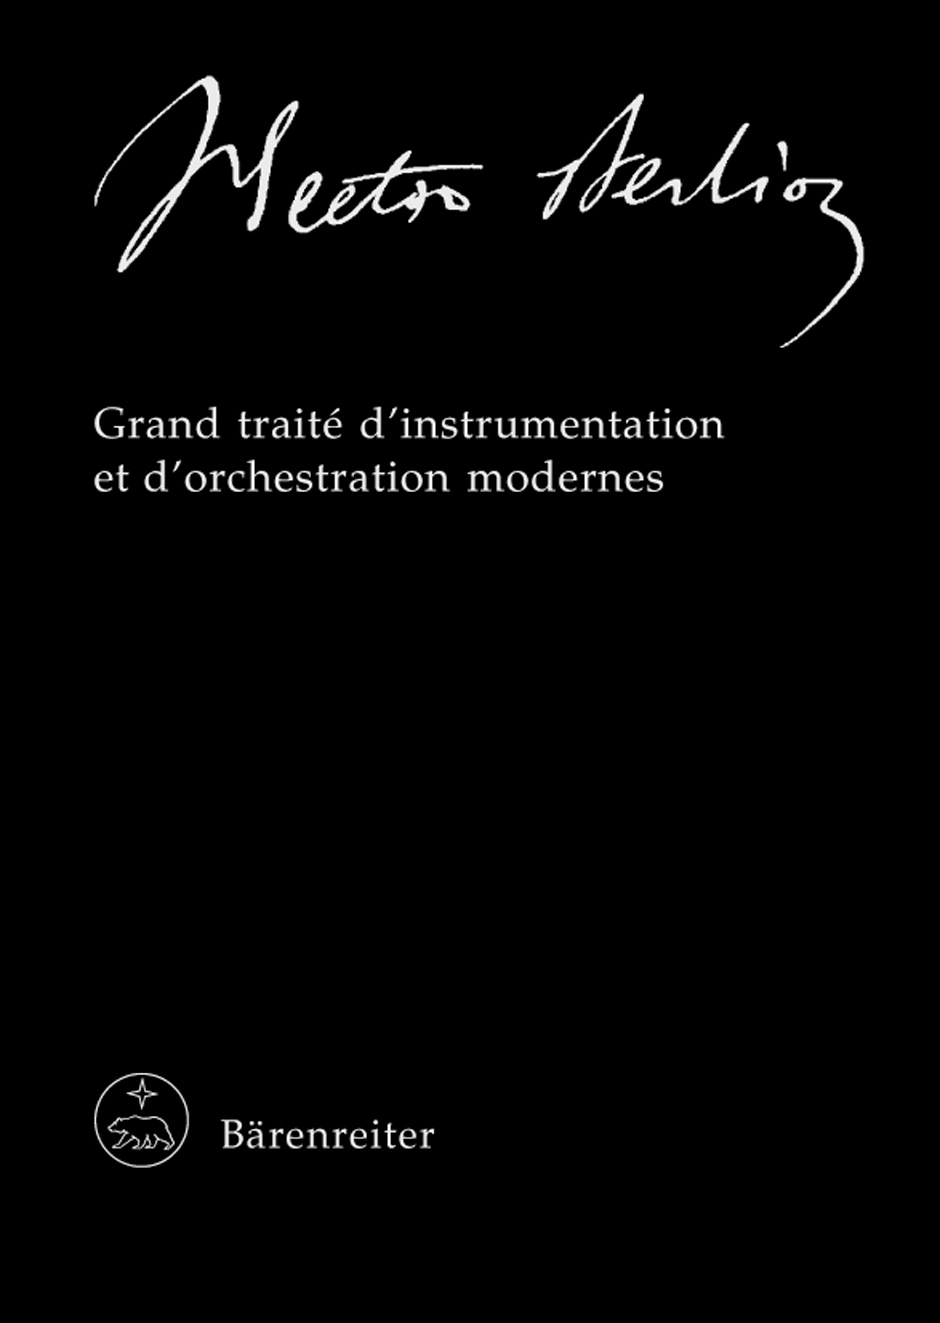 Grand Traute D'instrumentation